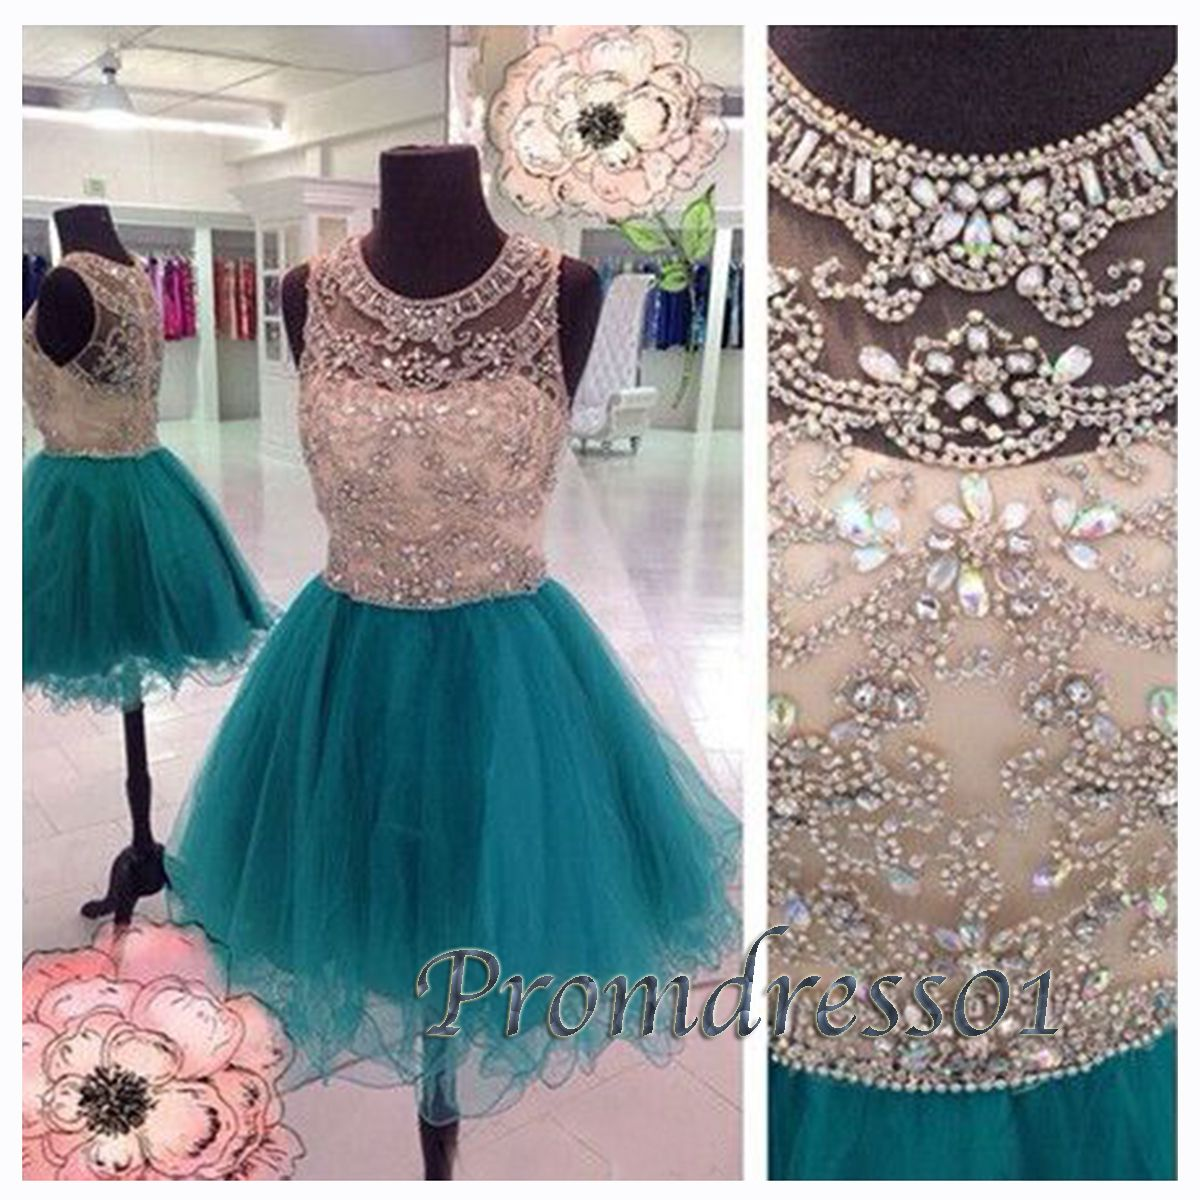 Prom dress round neck blue tulle vintage short prom dress for